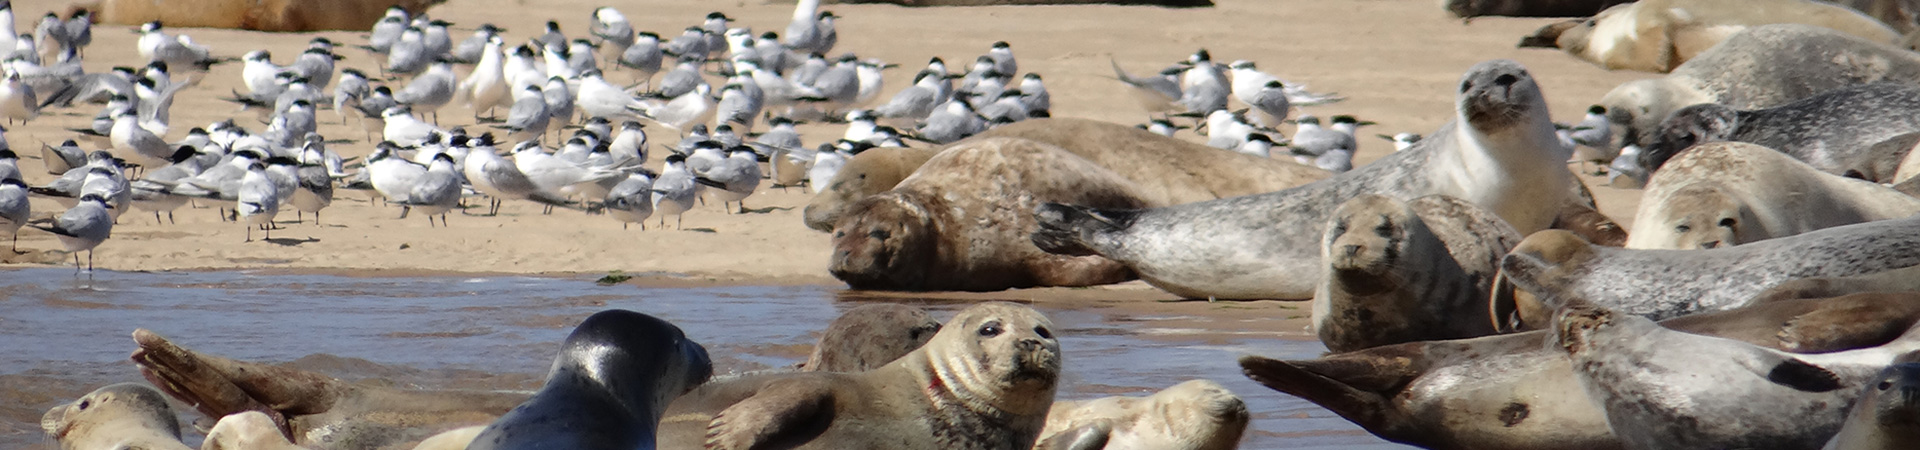 Seals and Terns at Blakeney Point